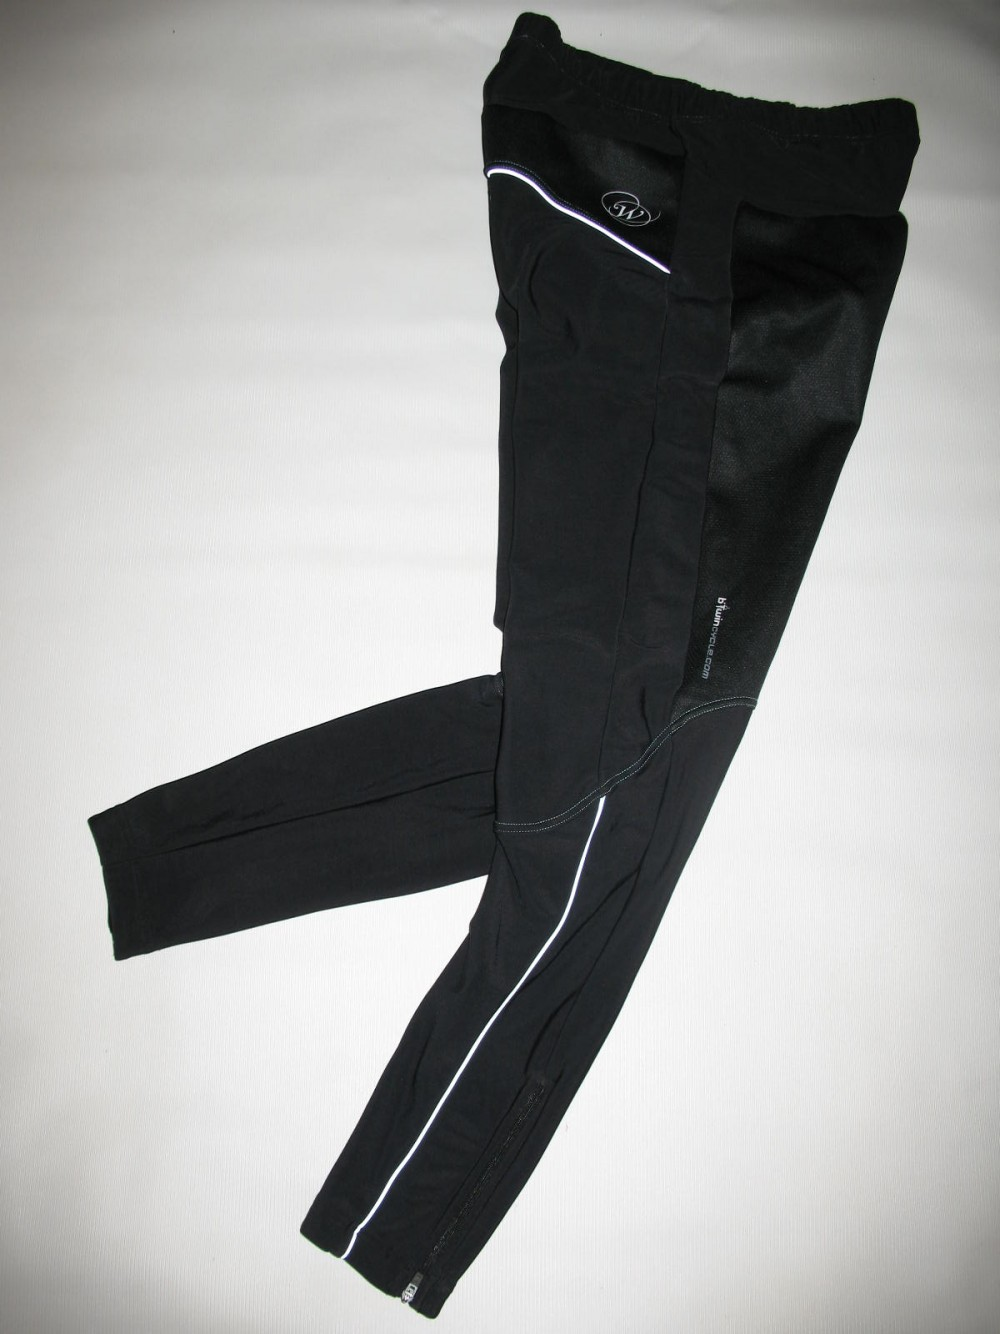 Велобрюки BTWIN collant sport thermal pants lady (размер L/M) - 19066